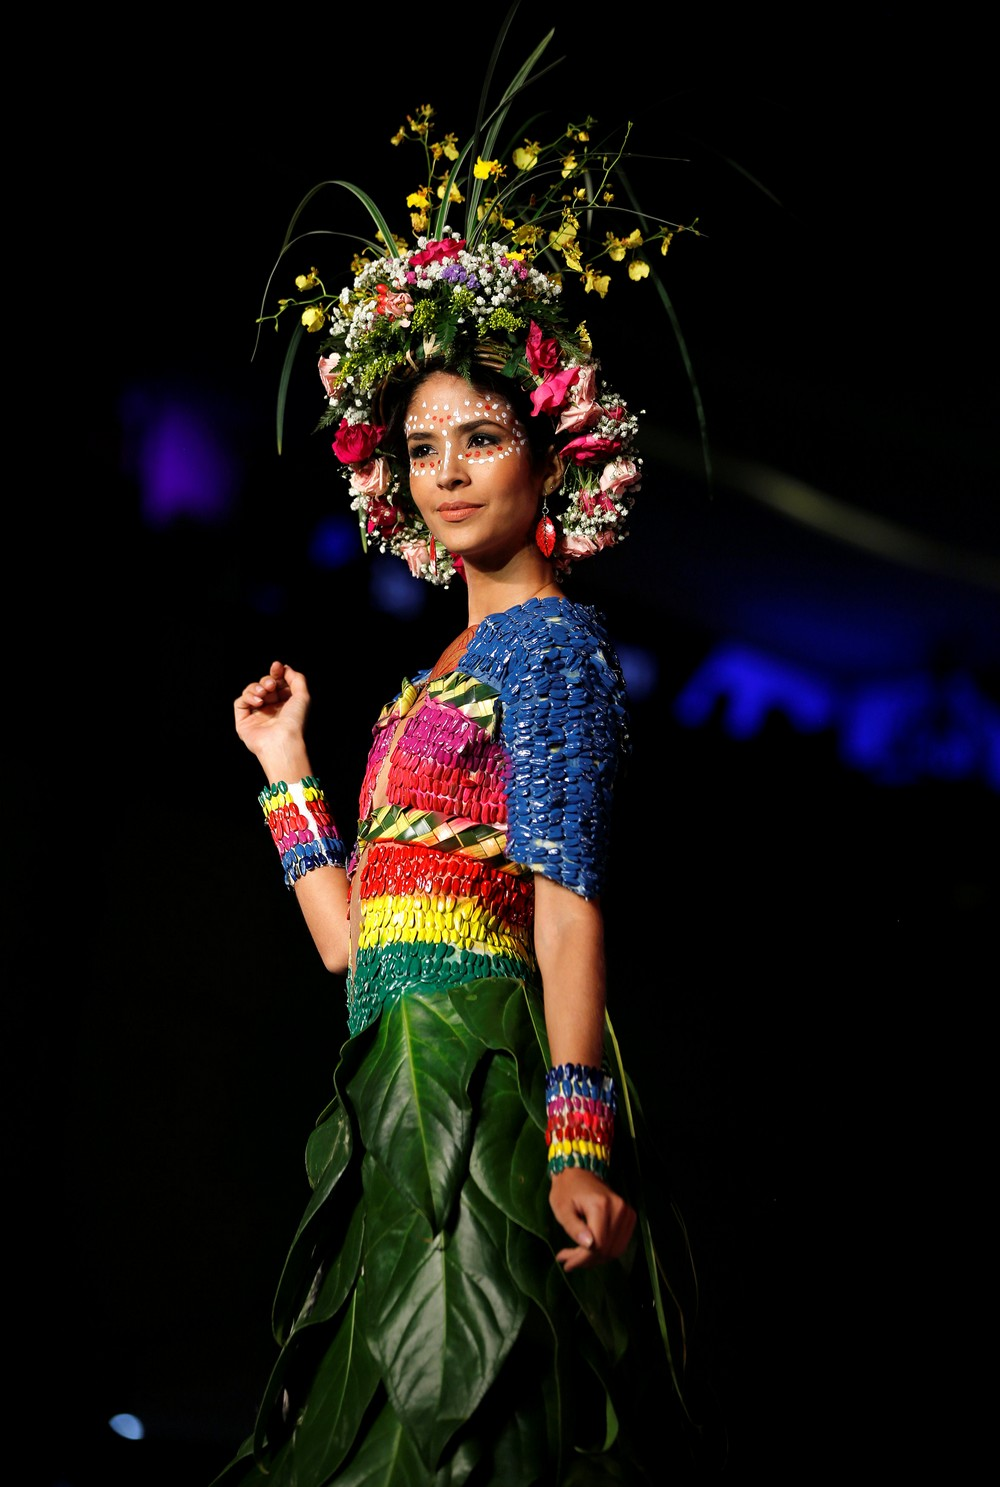 A model presents a creation during the Biofashion show, which features designs made from plants, recycled and natural materials, in Cali